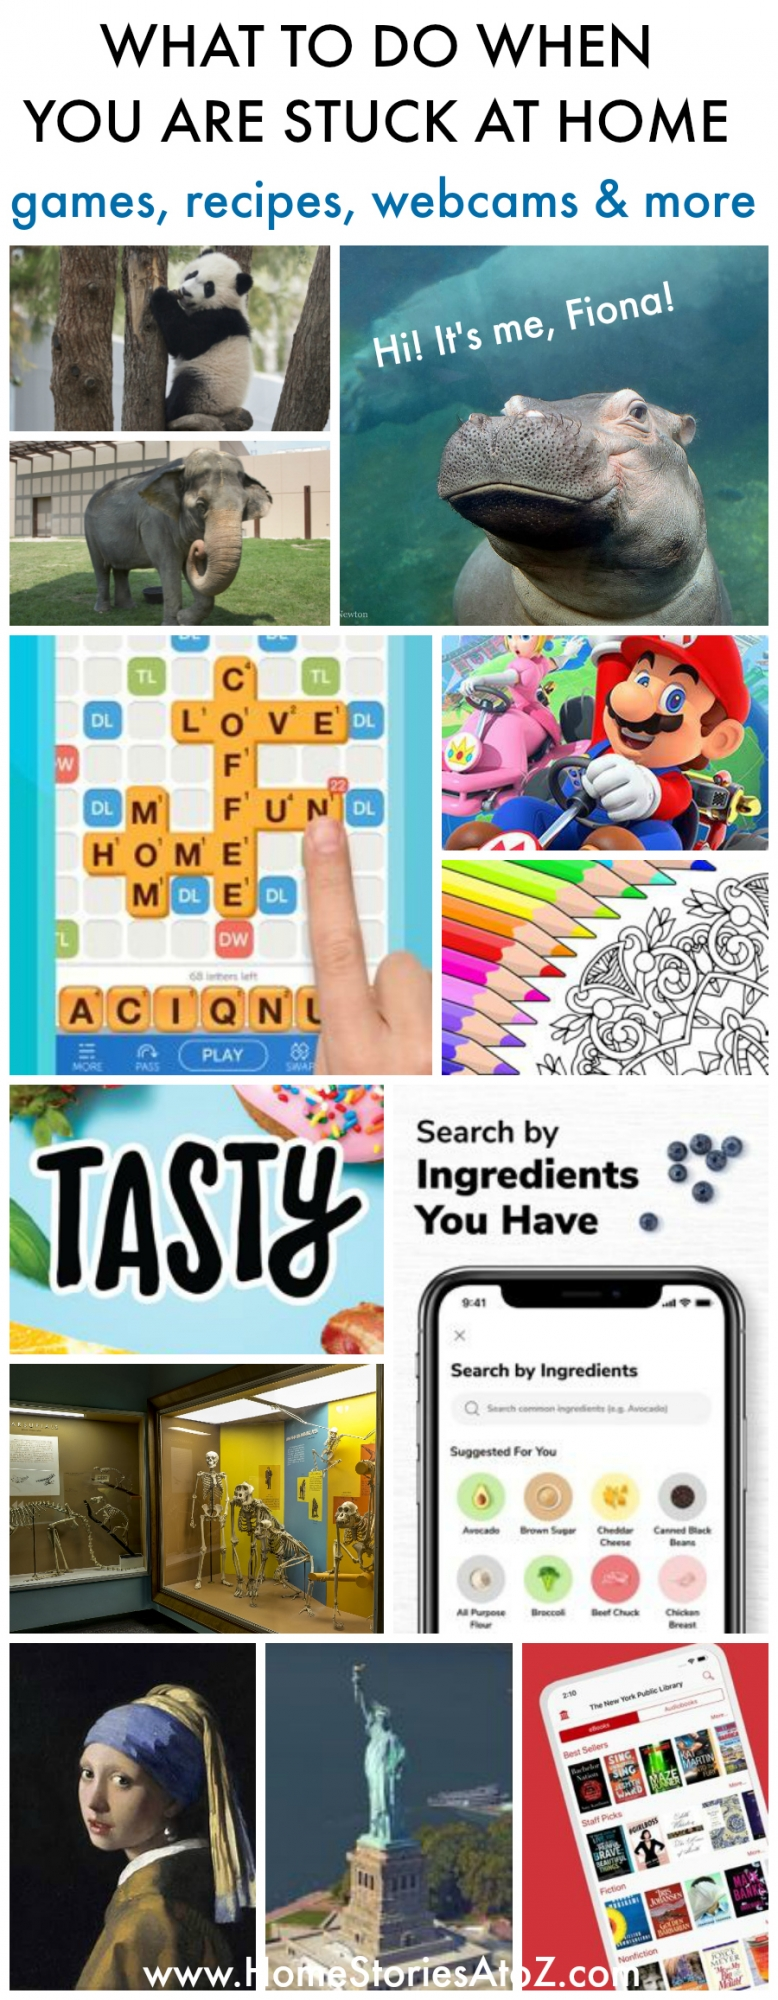 What to do when you are stuck at home - Games, recipes, webcams, and more - Home Stories A to Z